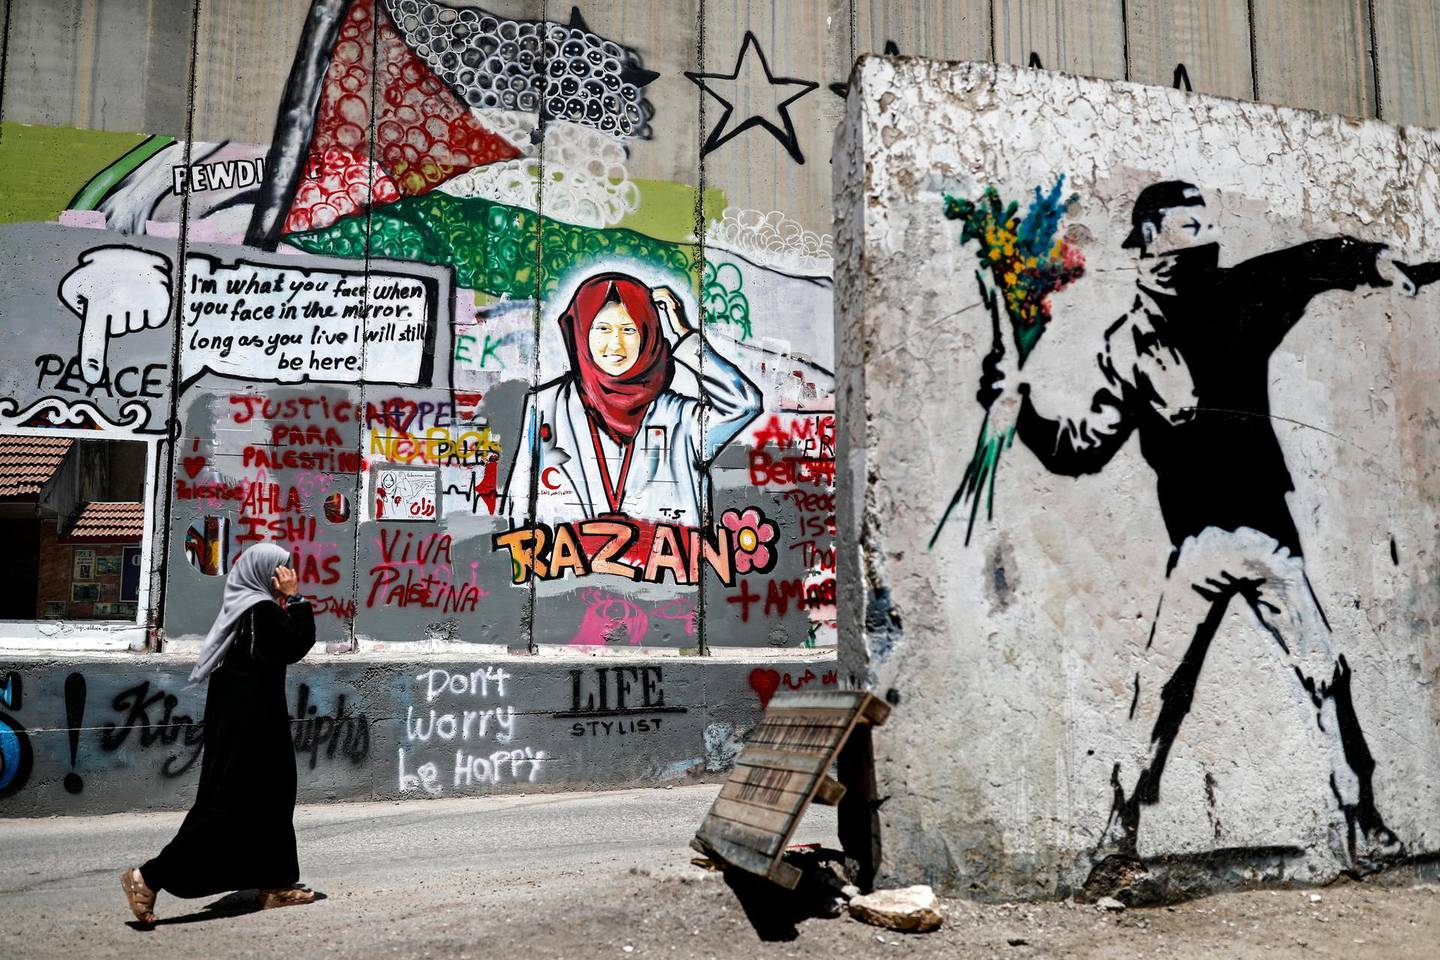 A Palestinian woman walks past fresh graffiti painted on Israel's controversial separation barrier in the occupied West Bank city of Bethlehem on June 22, 2018, by Palestinian street artist Taqi Sbateen depicting Razan Al Najjar (C), a paramedic nurse from Gaza who was killed by an Israeli sniper during a protest along the Israeli fence in Gaza. / AFP PHOTO / THOMAS COEX / RESTRICTED TO EDITORIAL USE - MANDATORY MENTION OF THE ARTIST UPON PUBLICATION - TO ILLUSTRATE THE EVENT AS SPECIFIED IN THE CAPTION